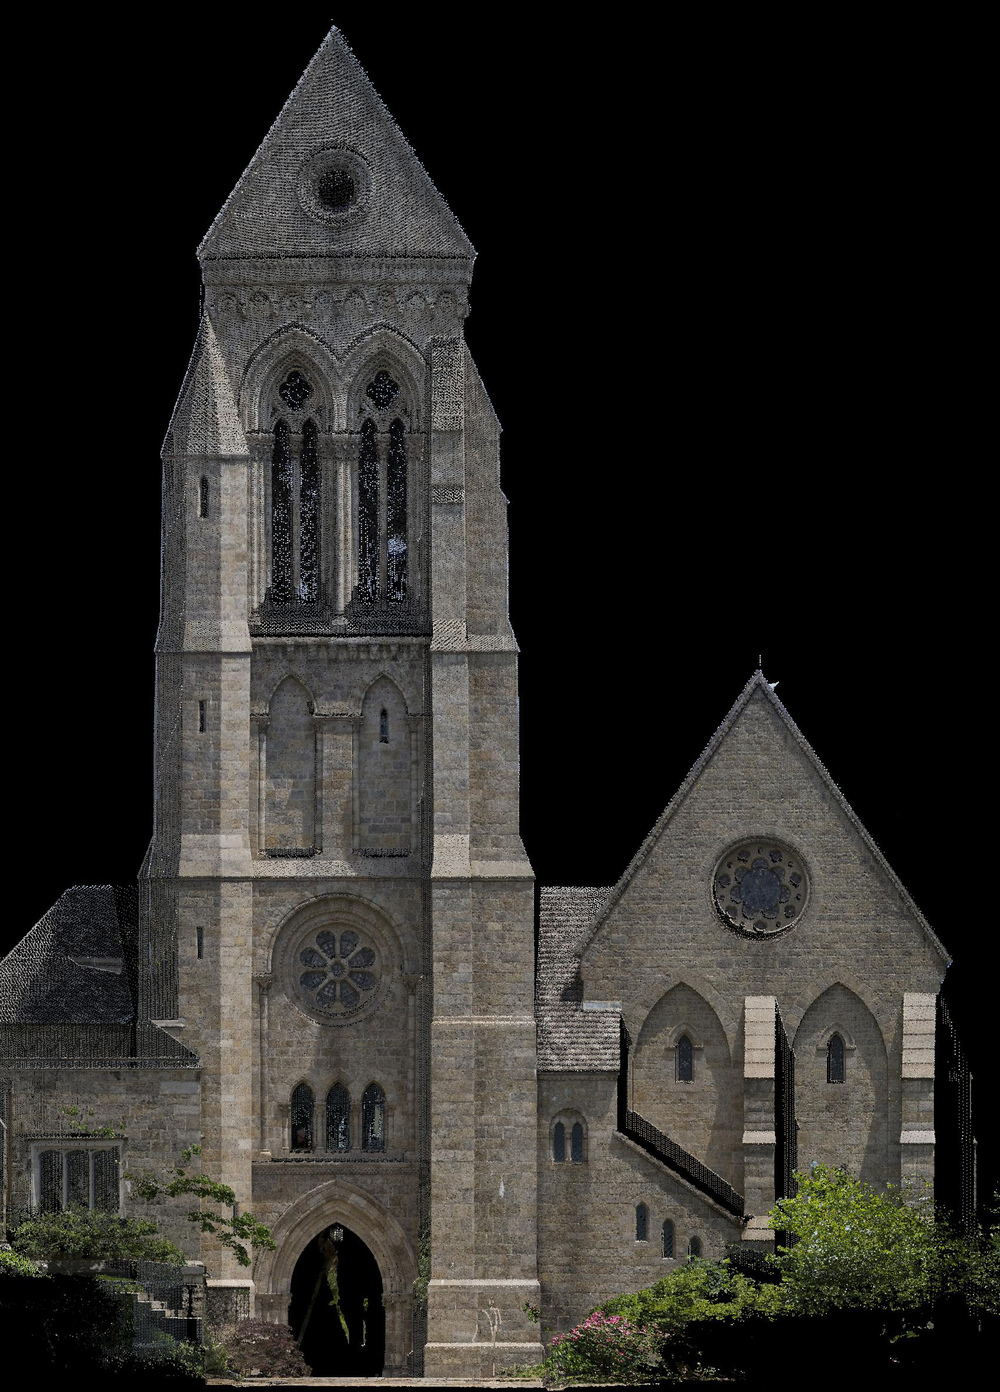 Figure 2: Bryn Athyn, Cathedral of the New Jerusalem, laser scan: Ezekiel Tower, elevation from the west.